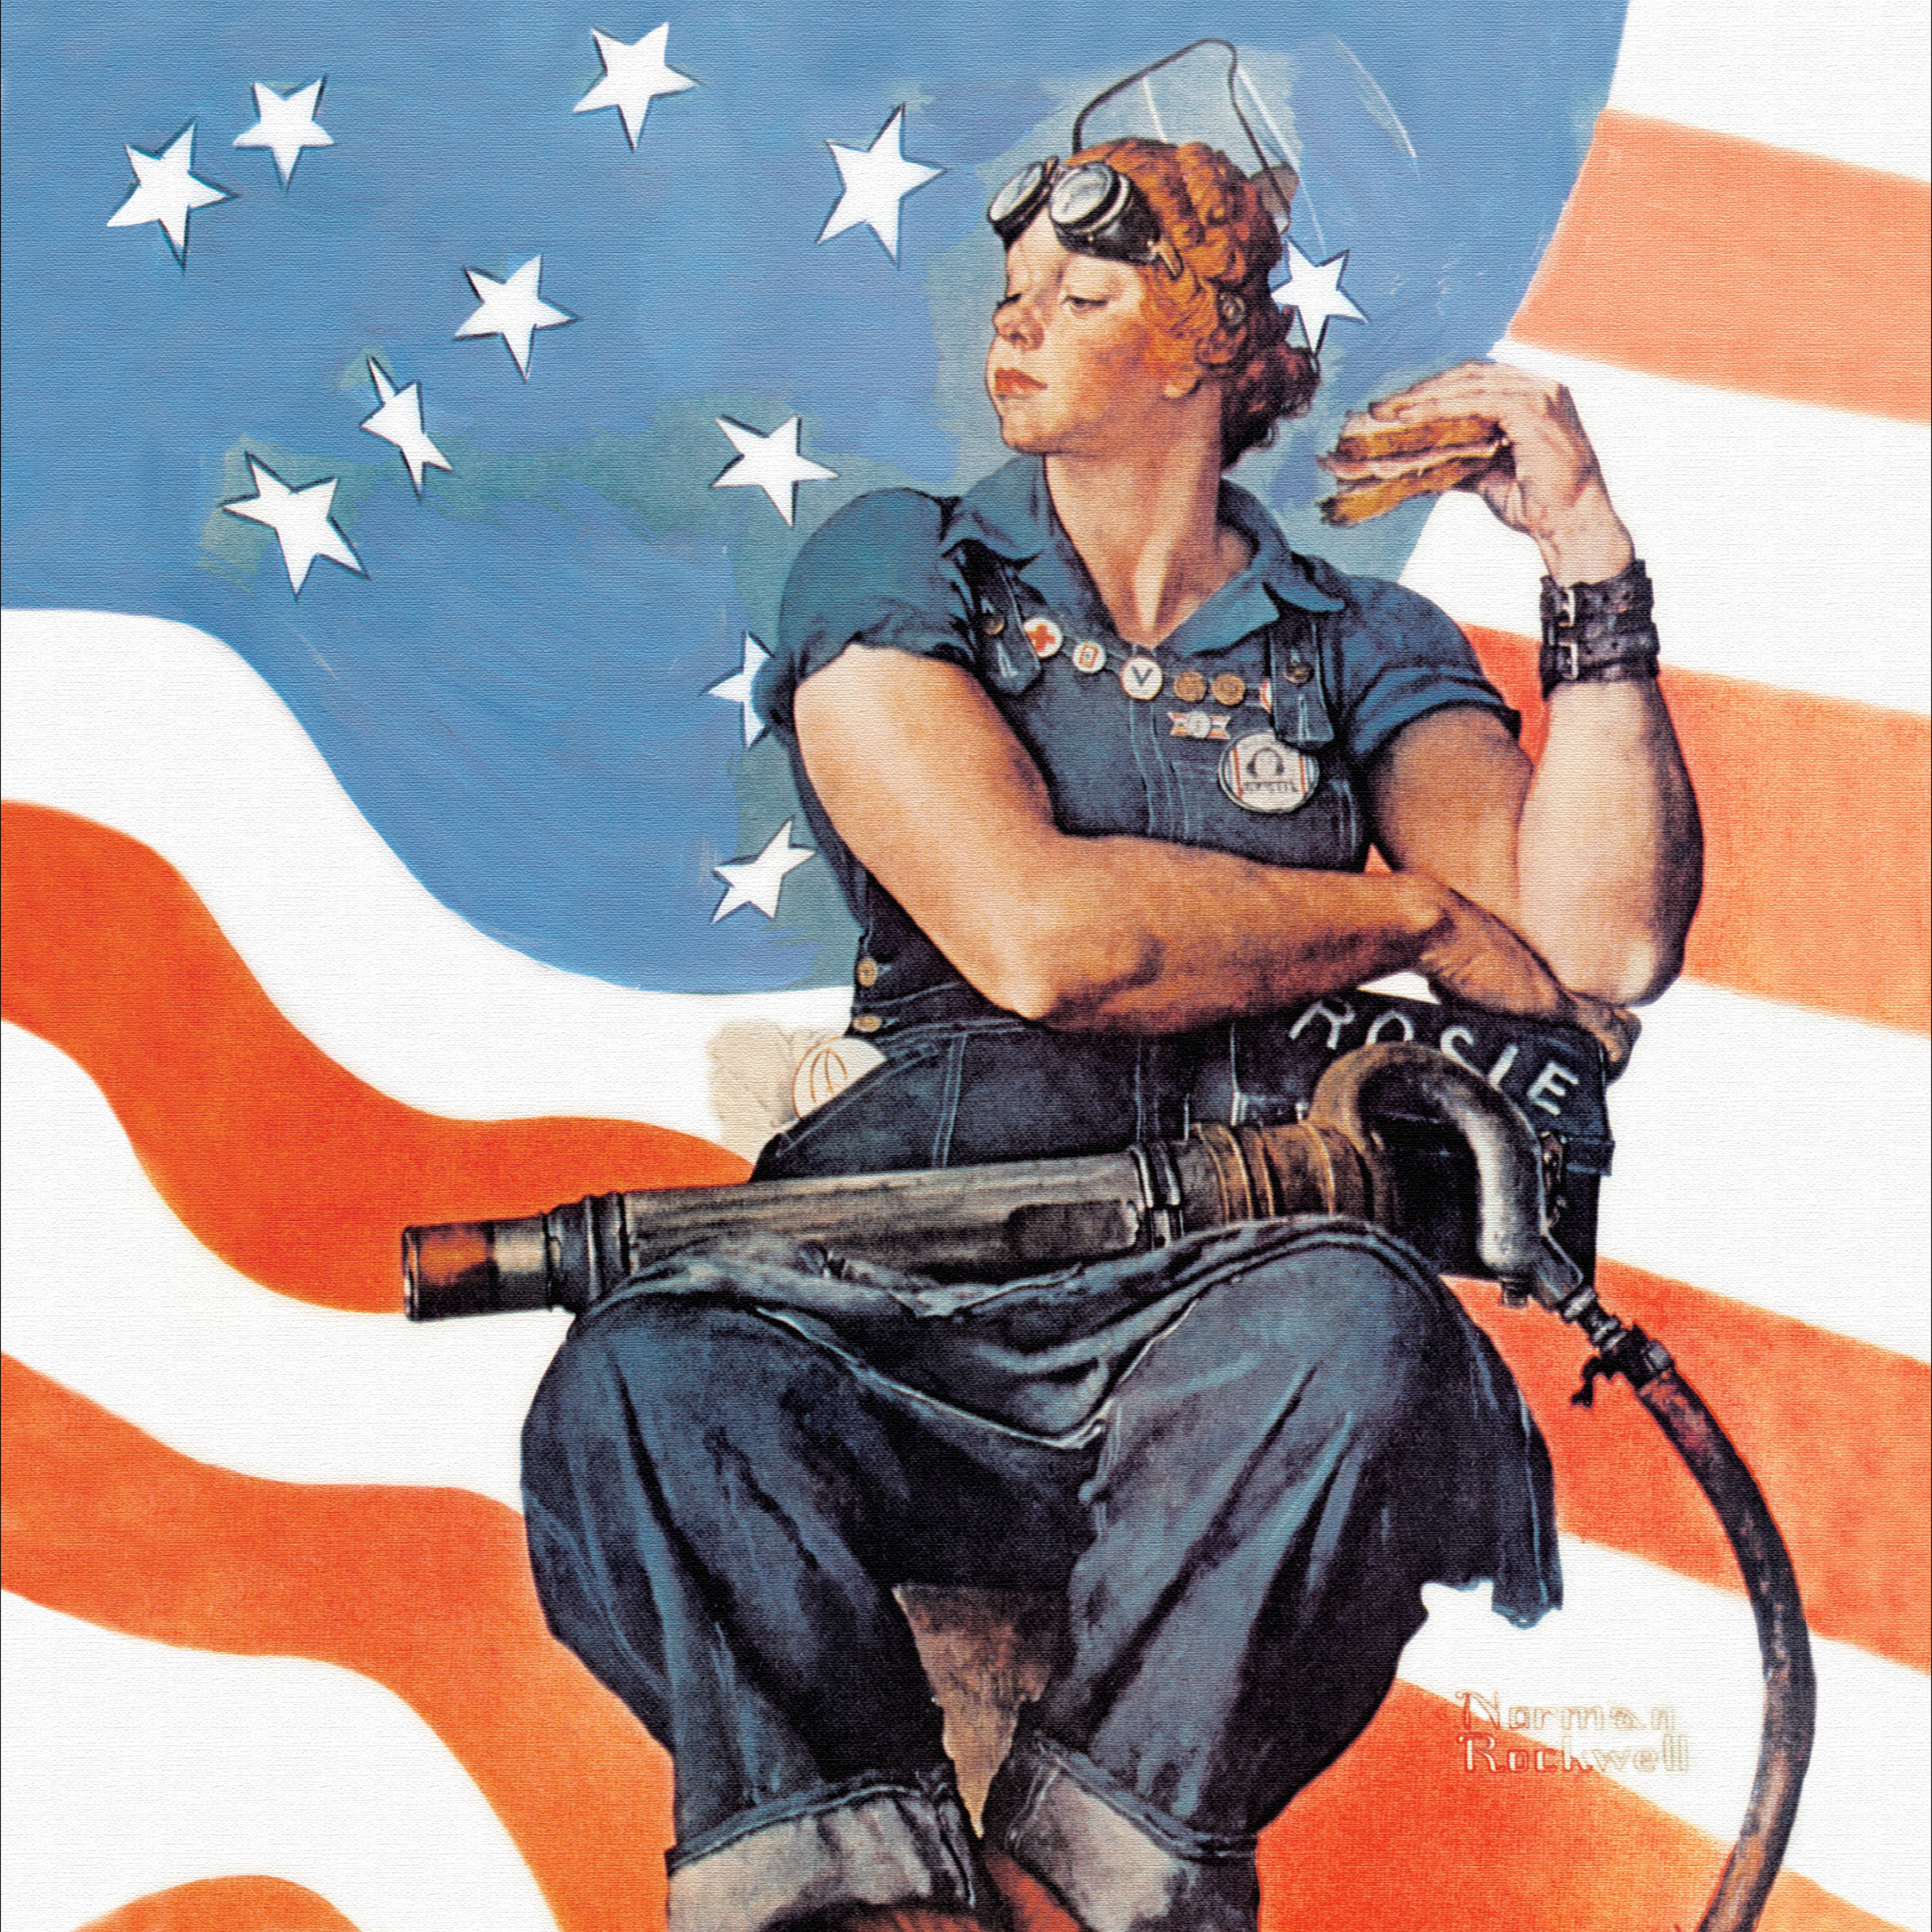 Rockwell depicts the iconic Rosie Riveter as a bulky figure seated in the center of the piece with shameless marks of her labor, such as the stains and grime on her skin and clothing. He illustrates Rosie with other stereotypically masculine features including her overalls and loafers, various organizational pins on her chest, the large rivet gun, and fierce grip on the lunch box. However, there are also contradictions to this masculine narrative: Rosie has nail polish and lipstick, a feminine high nose tip, and styled red curly hair.